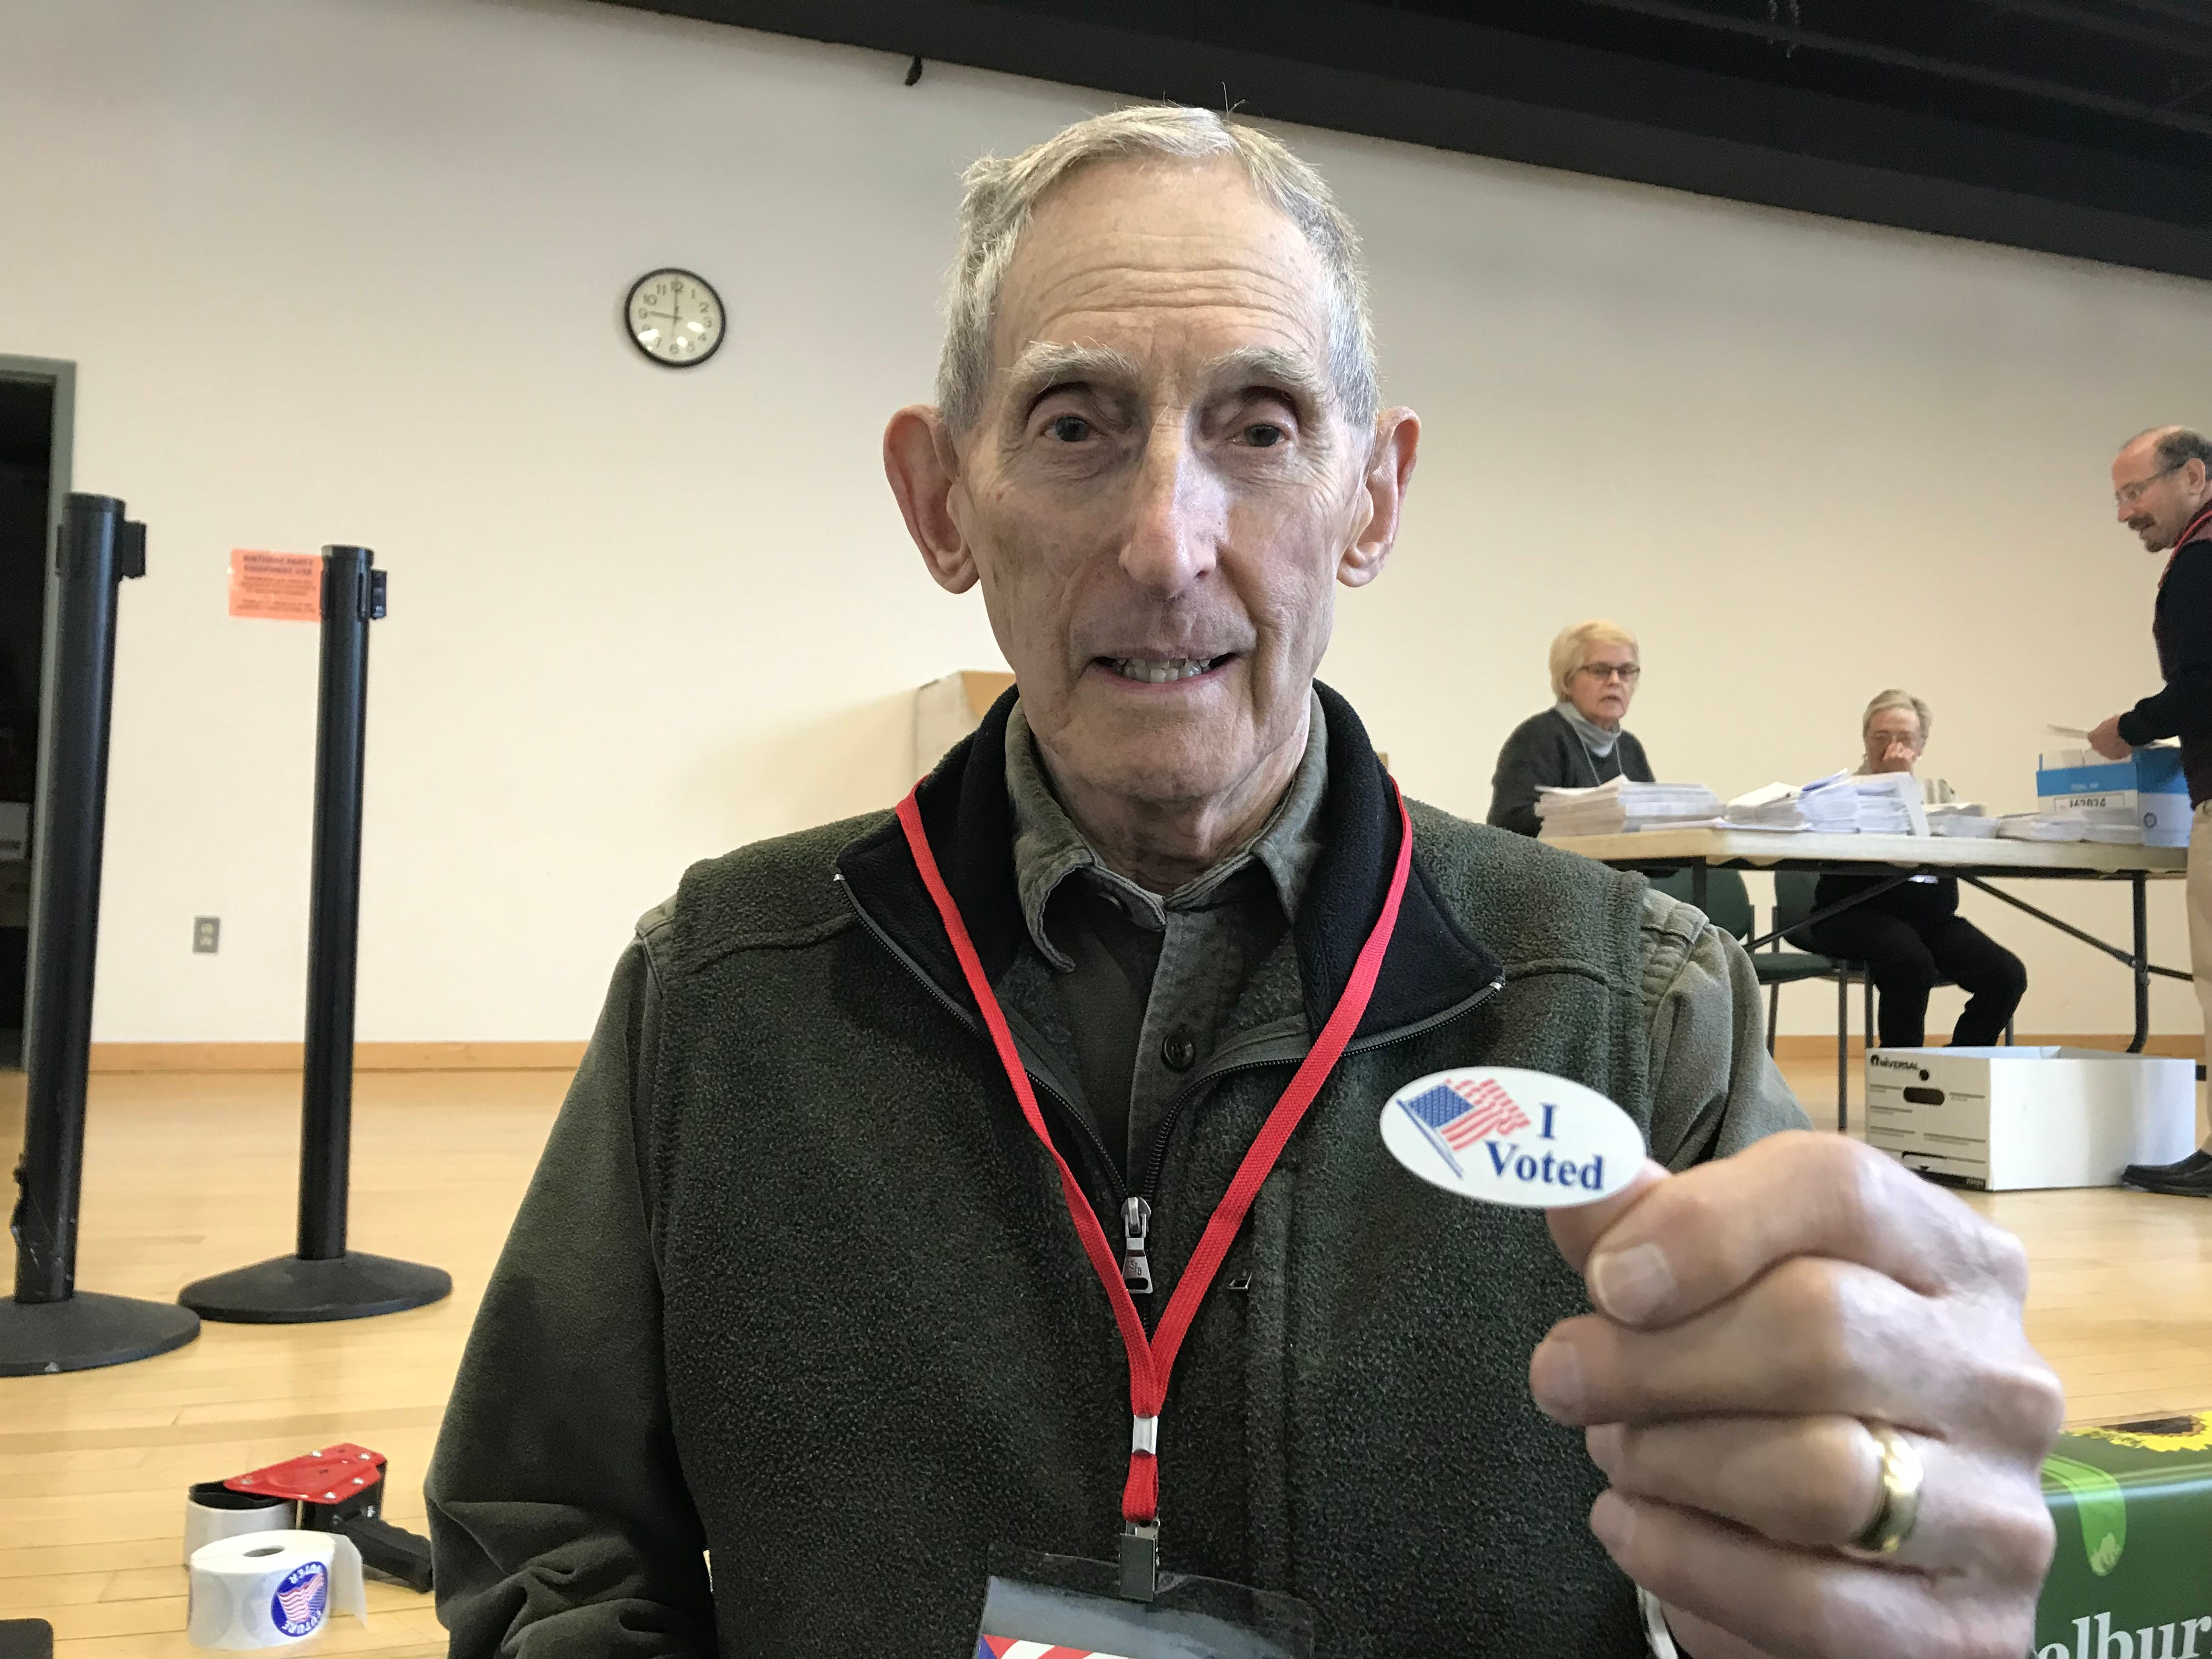 """Bud Ockert, 83, a lifelong Shelburne resident and a fixture at on Town Meeting Day, gives out """"I voted"""" stickers after guiding residents to insert ballots into the machine for tallying. Seen on Tuesday, March 5, 2019."""